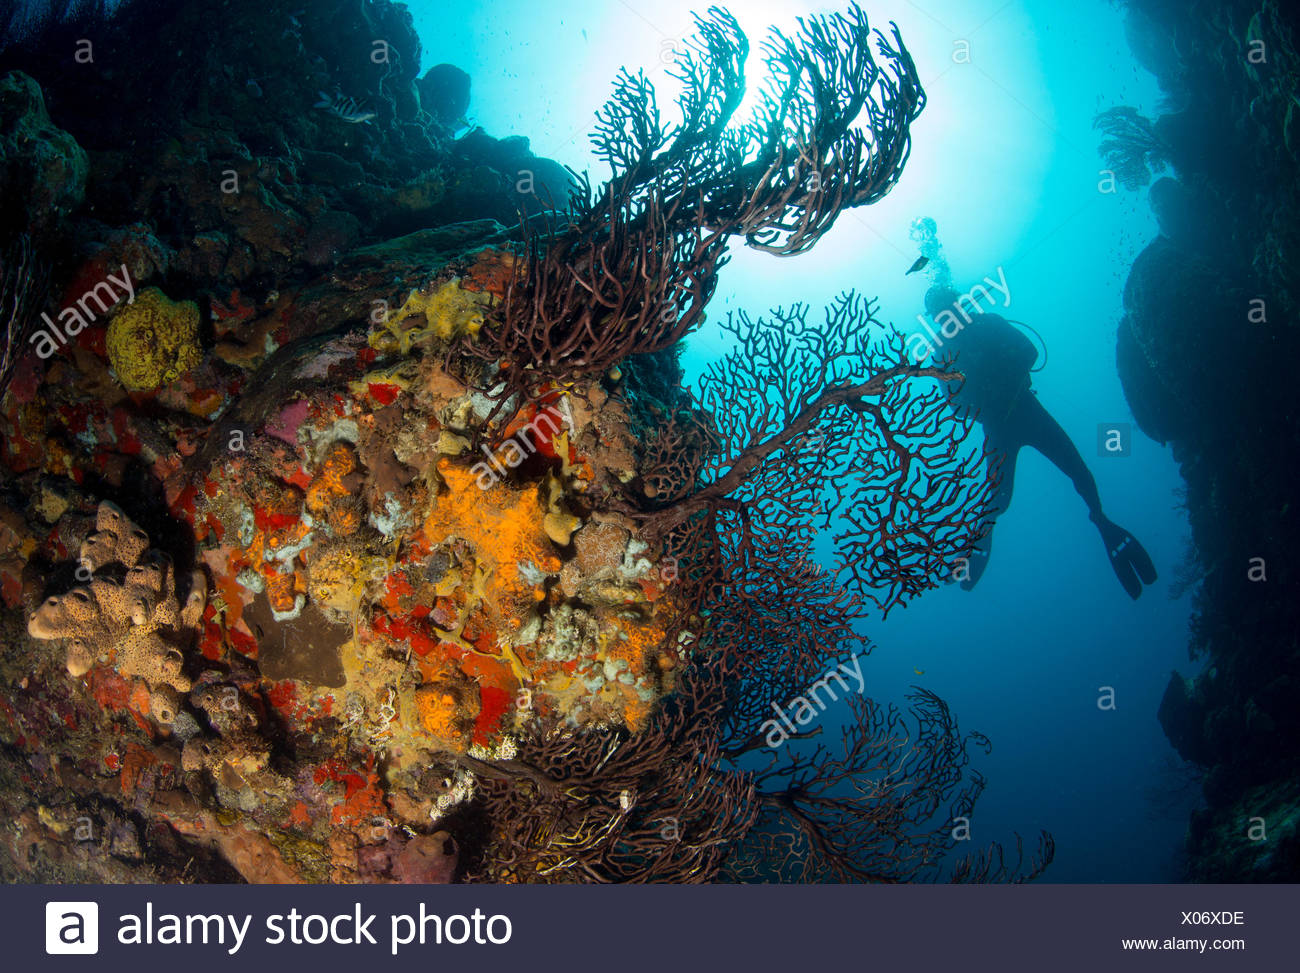 Diver on coral reef. - Stock Image